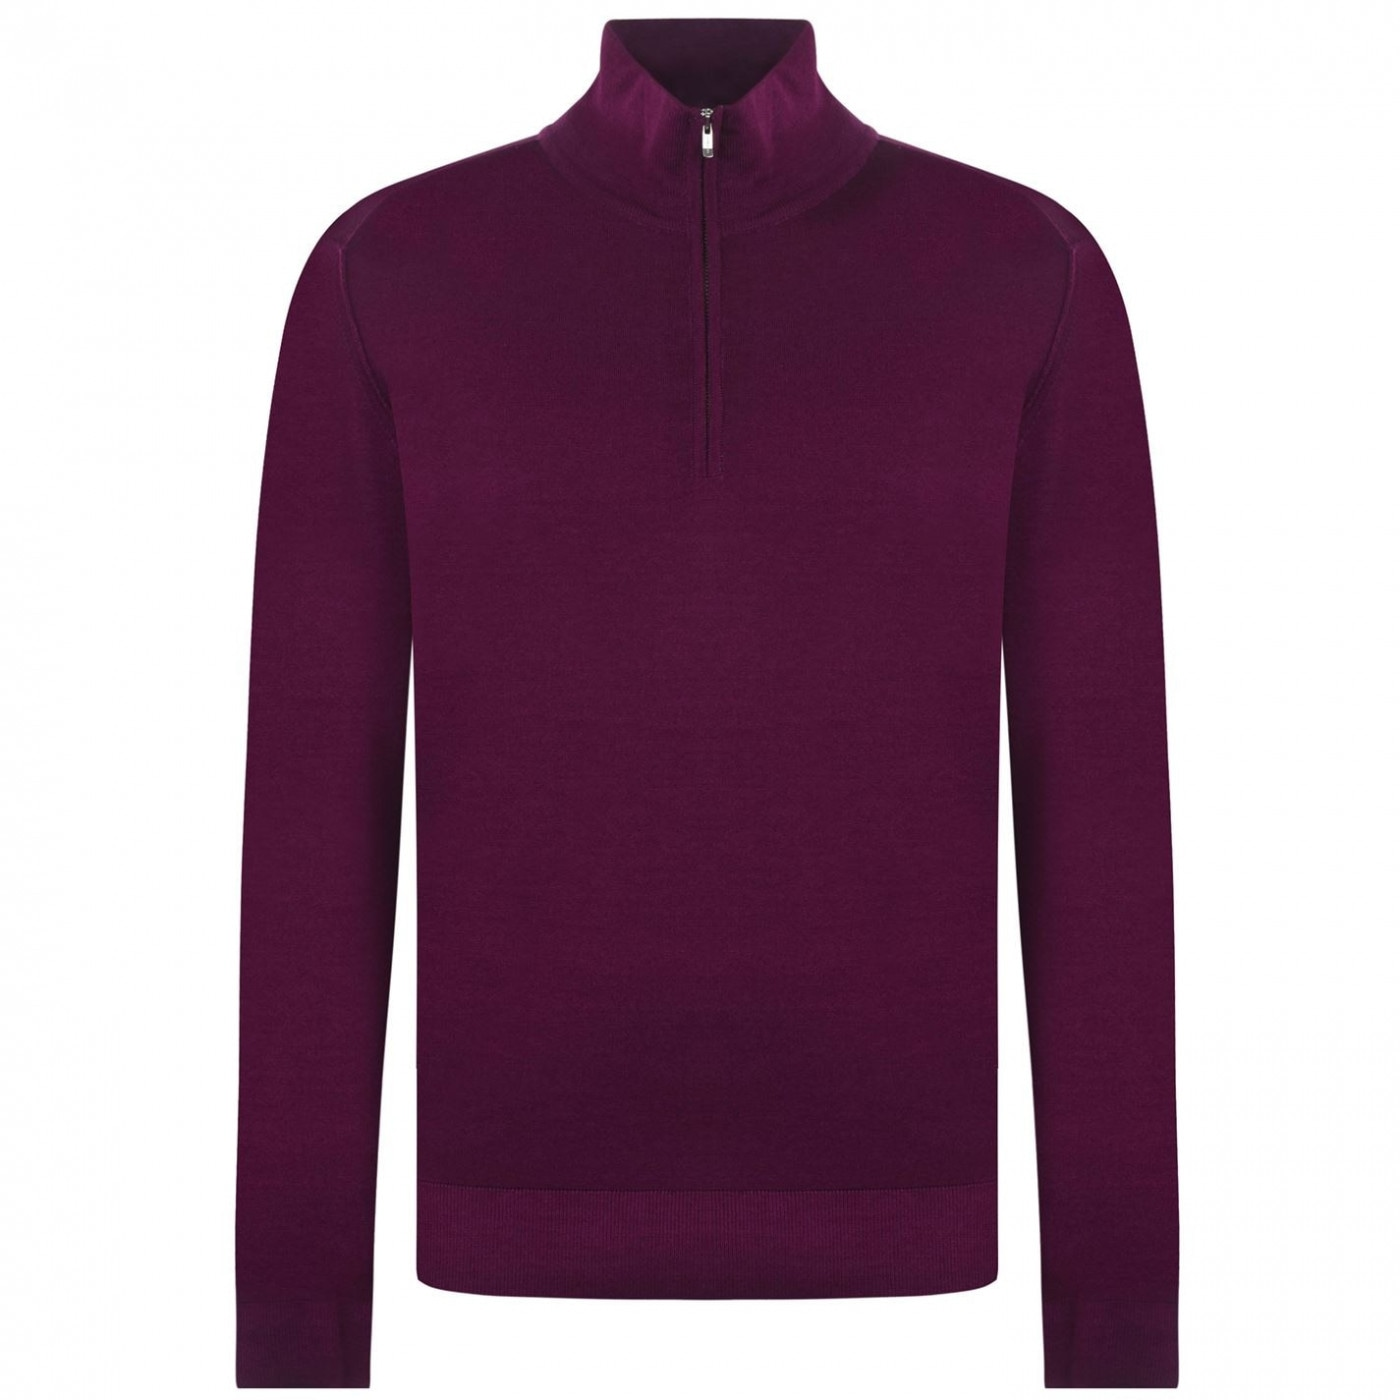 CP COMPANY 55a Knitted Crewneck Sweater